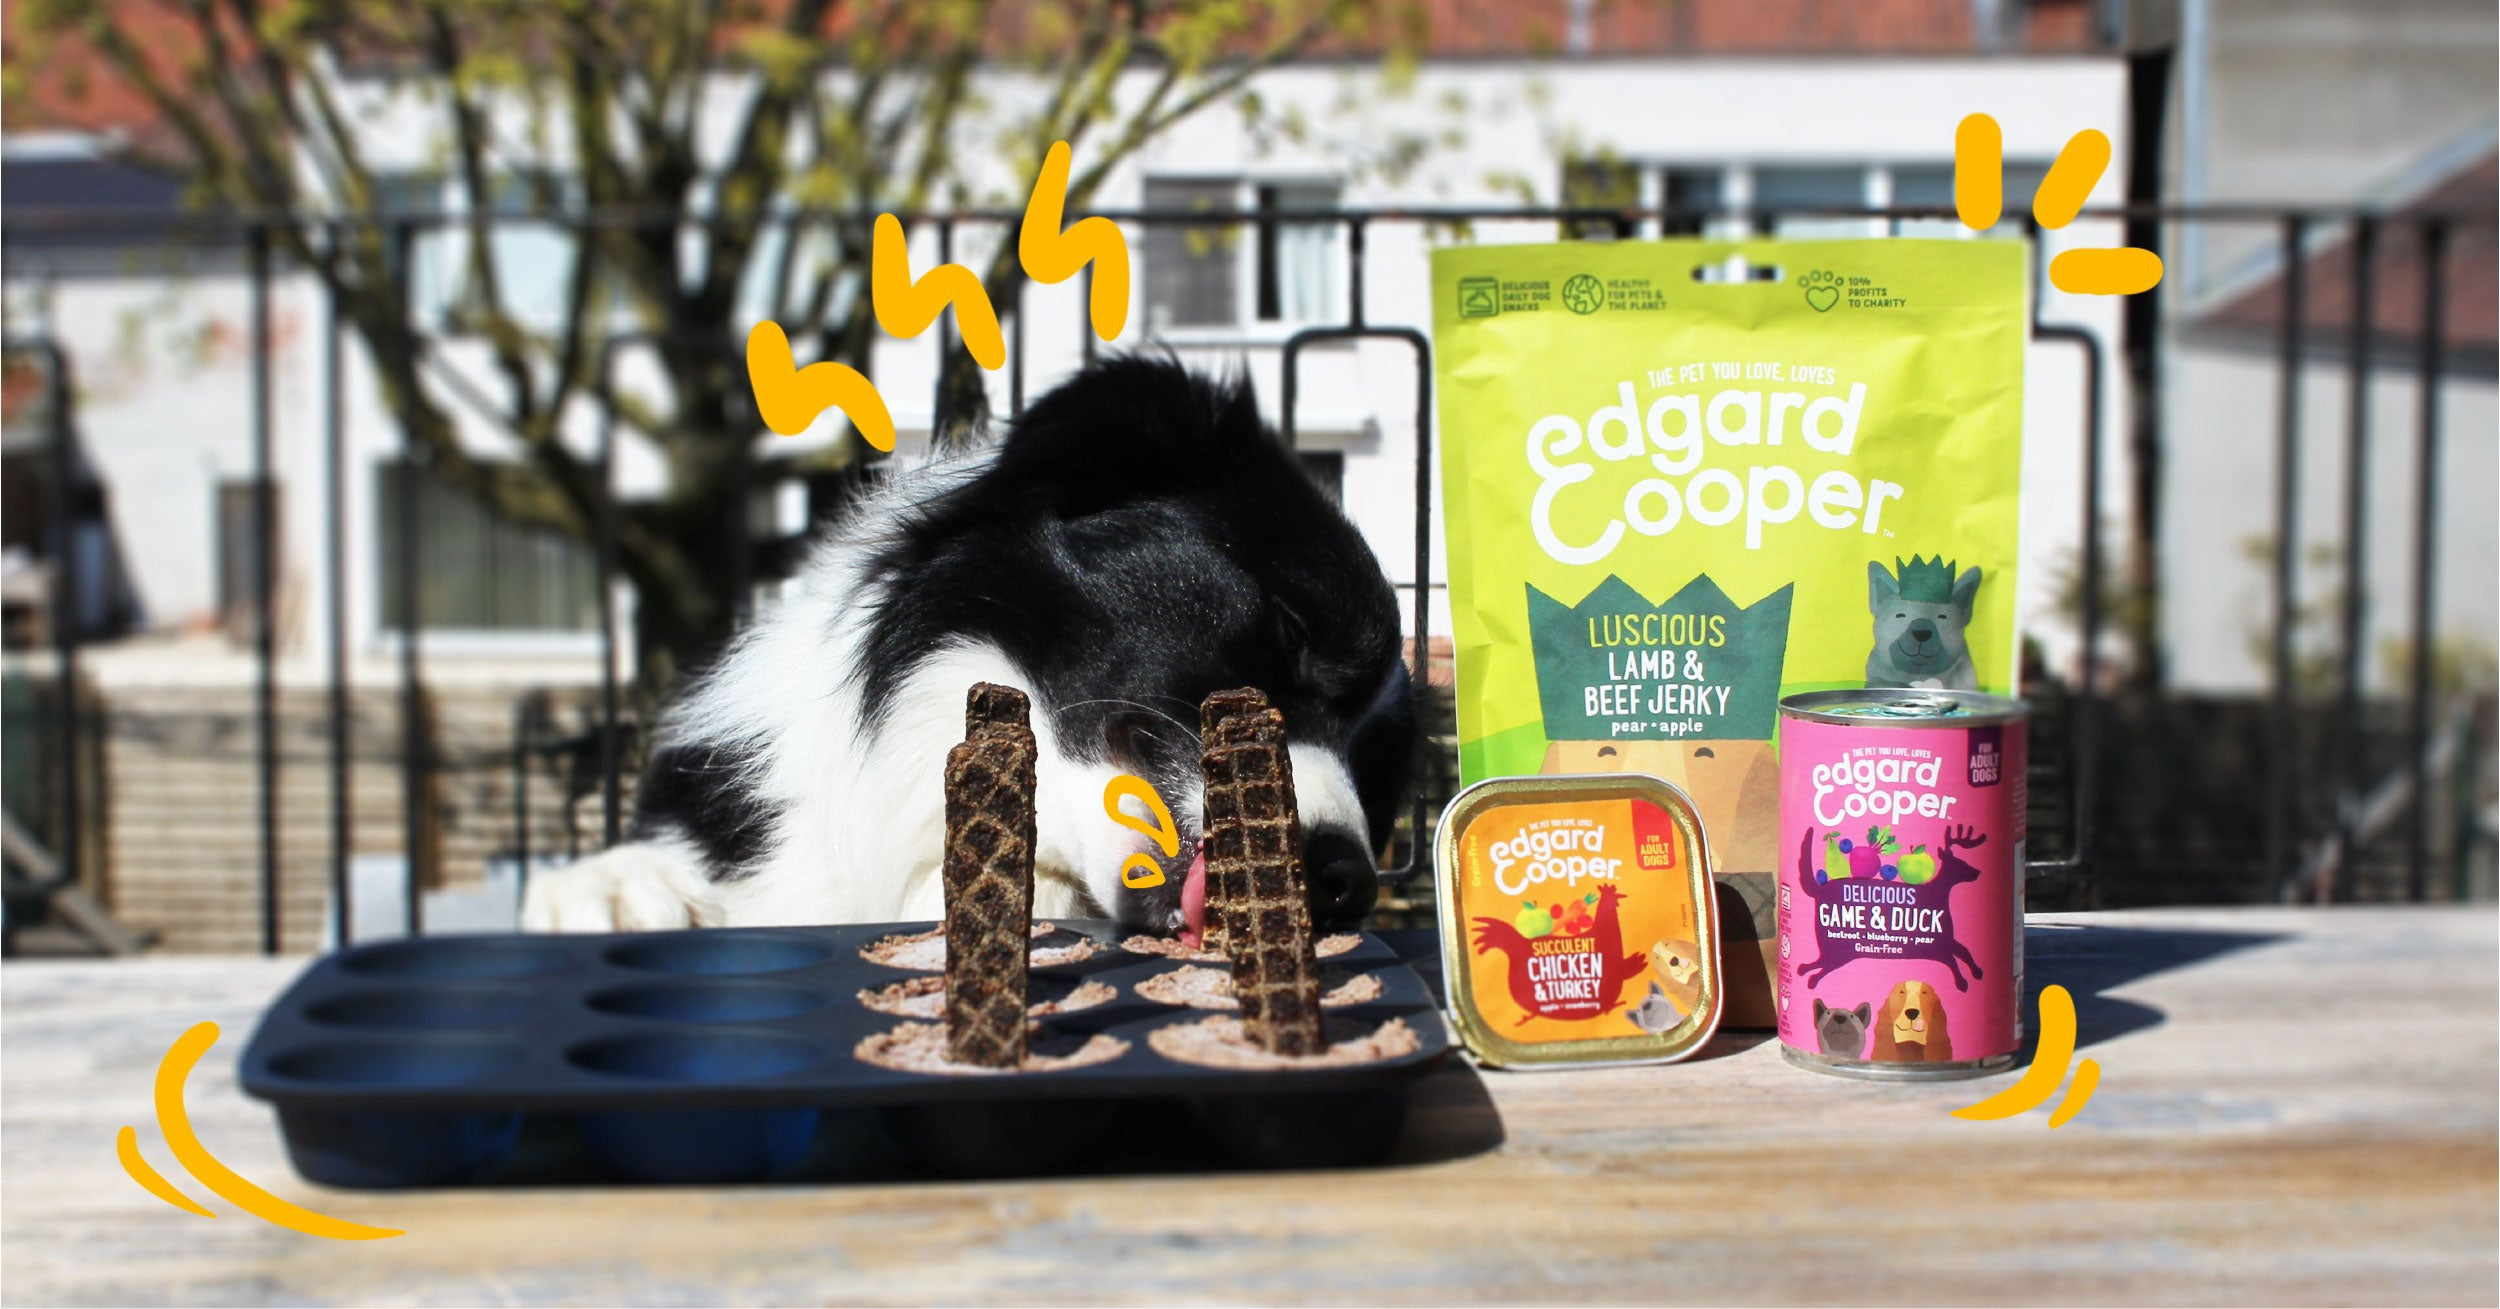 Dog licking E&C ice creams with E&C products in shot.